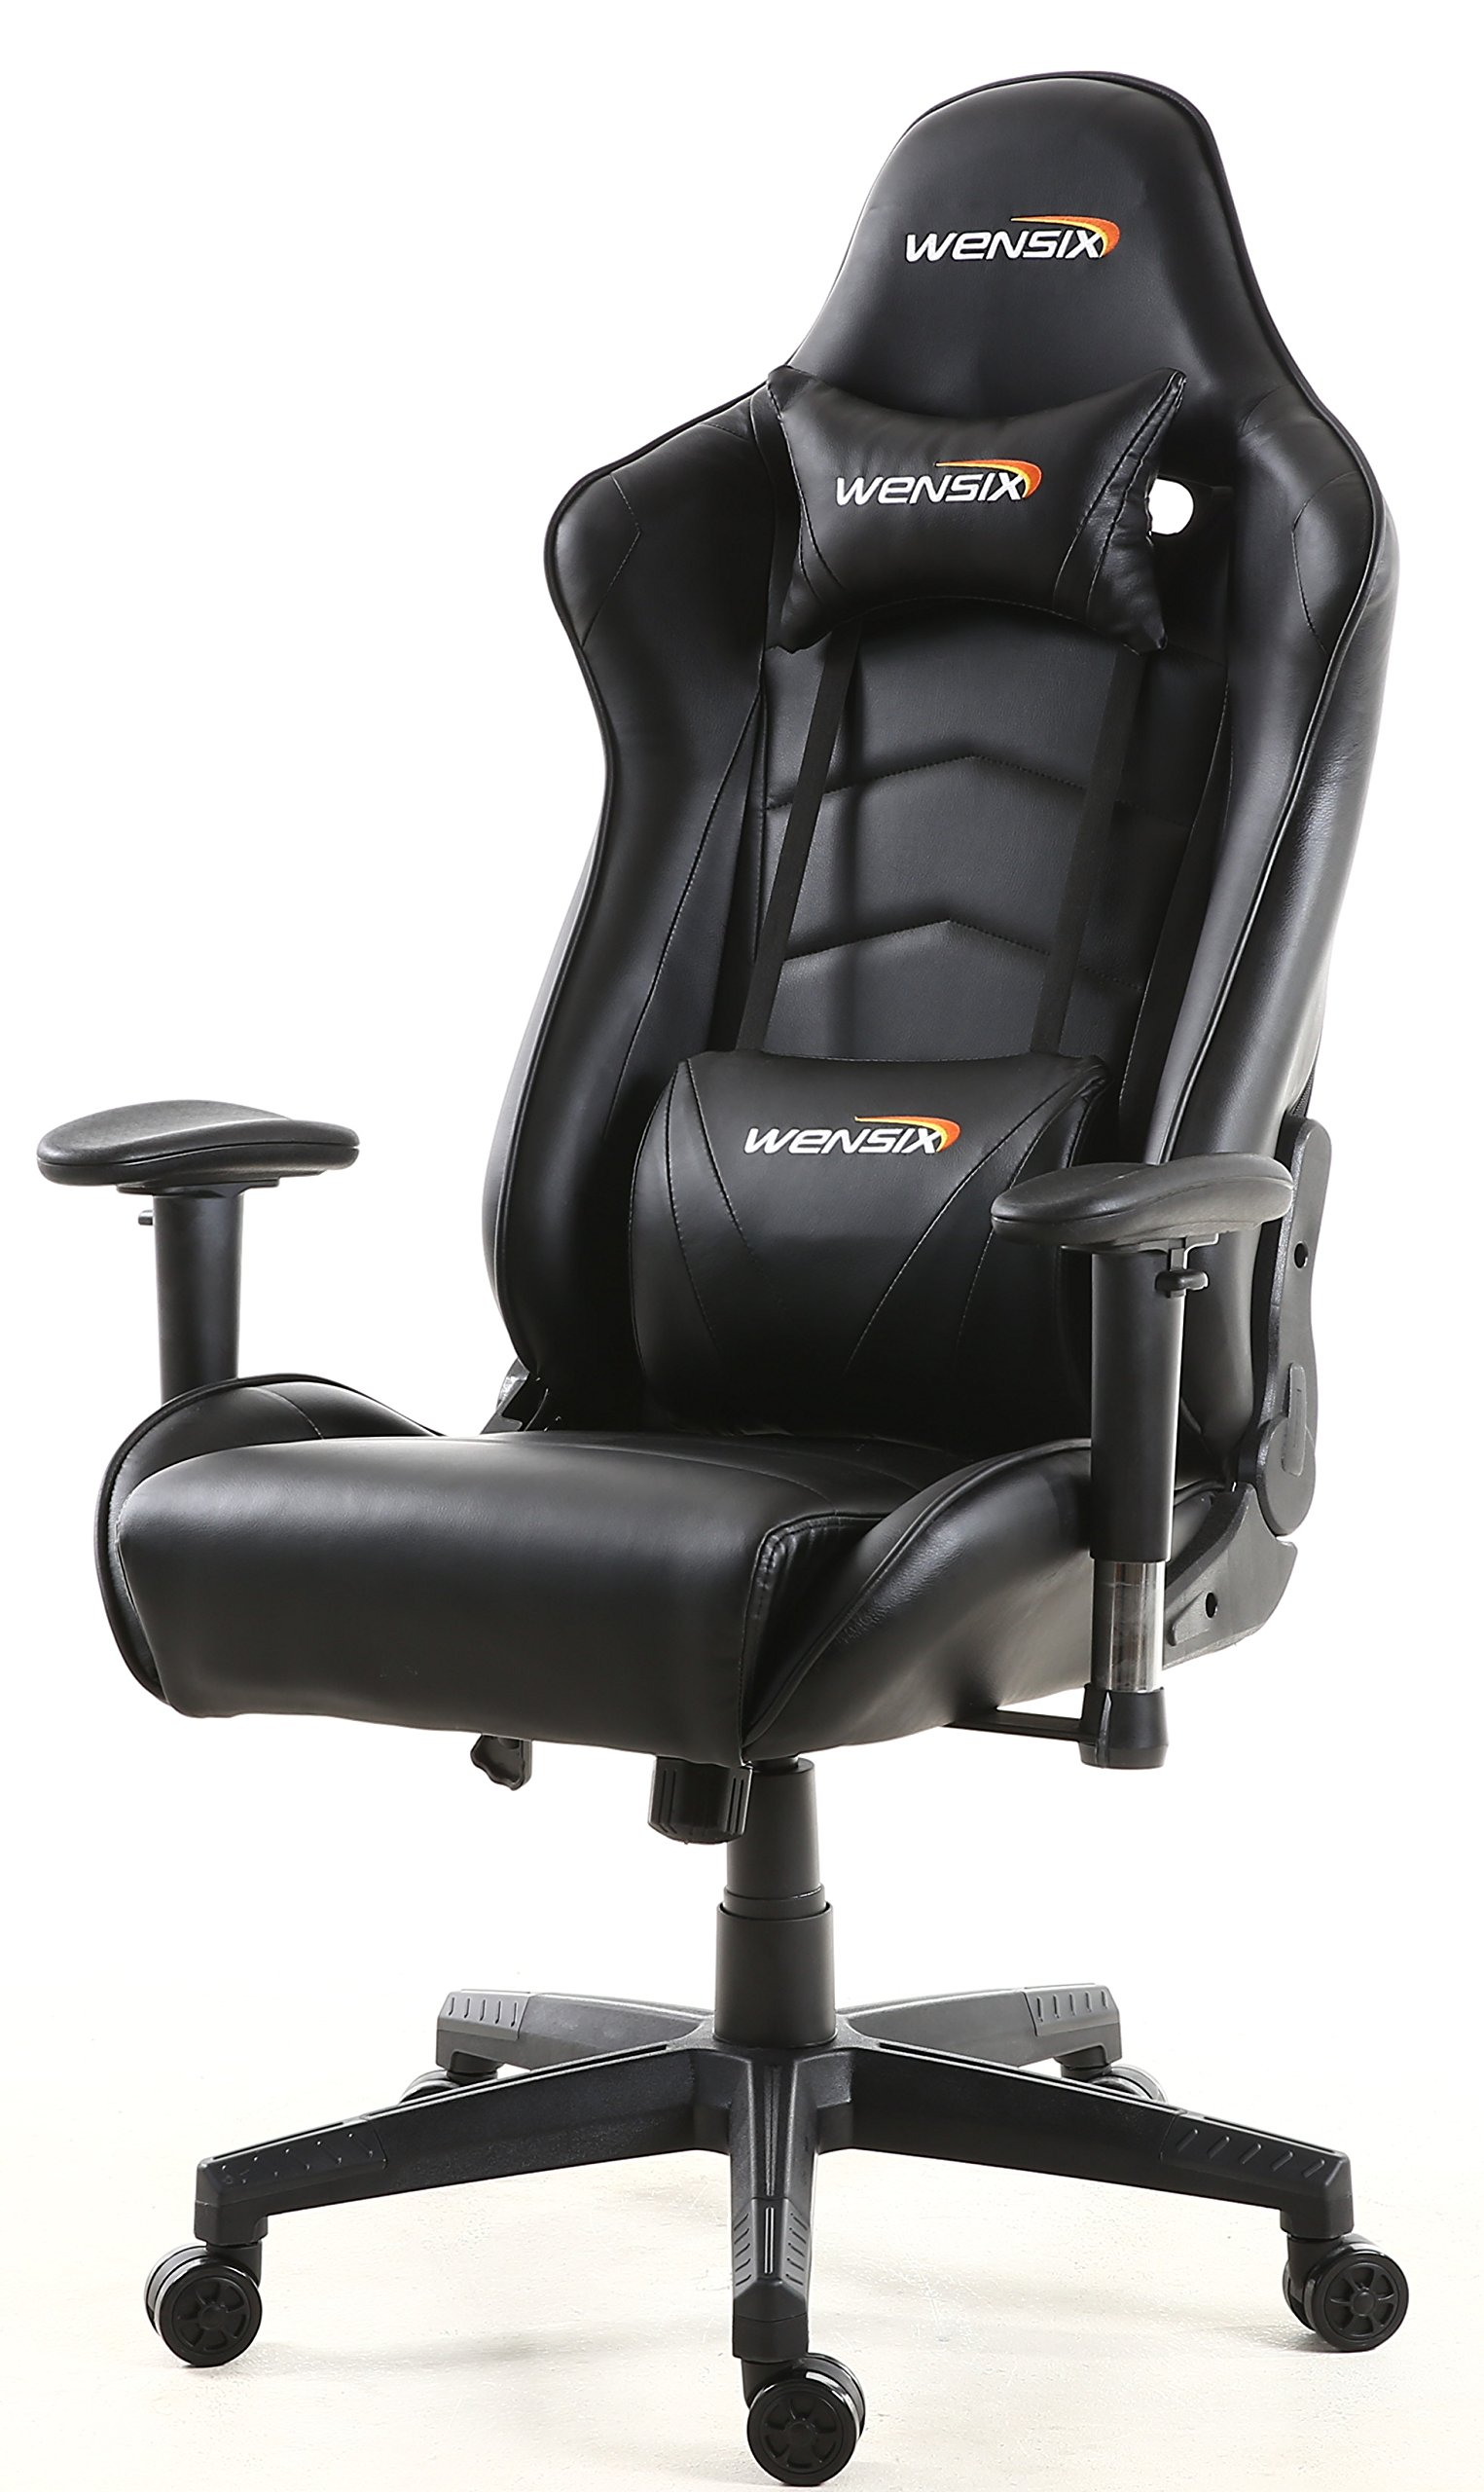 WENSIX Ergonomic High Back Computer Gaming Chair for PC Racing Chairs with Adjustable Headrest and Backrest (Black-01)